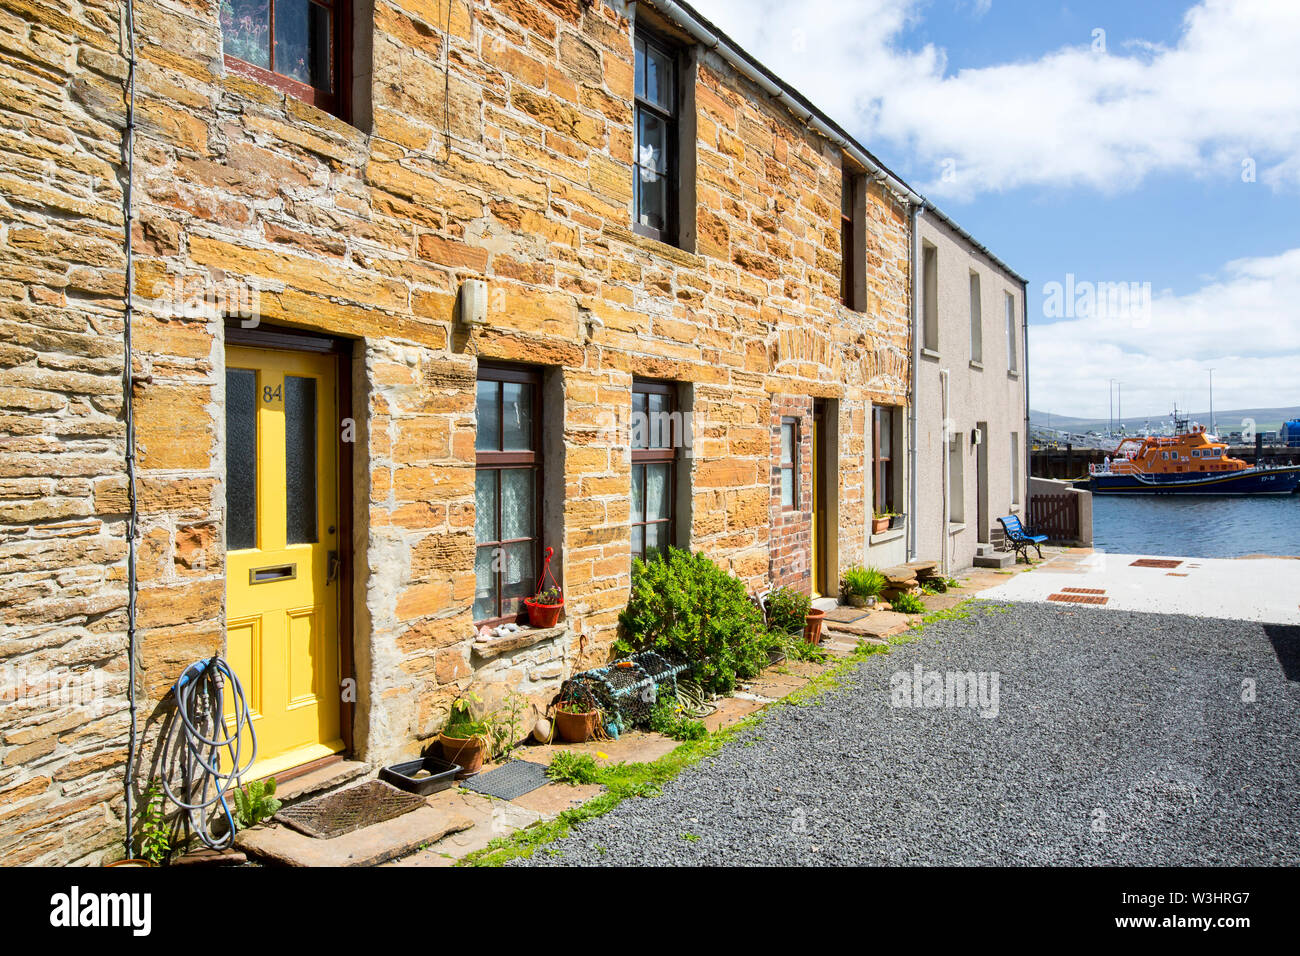 Terraced housing overlooking the harbour, Stromness, Orkney, Scotland, UK. - Stock Image